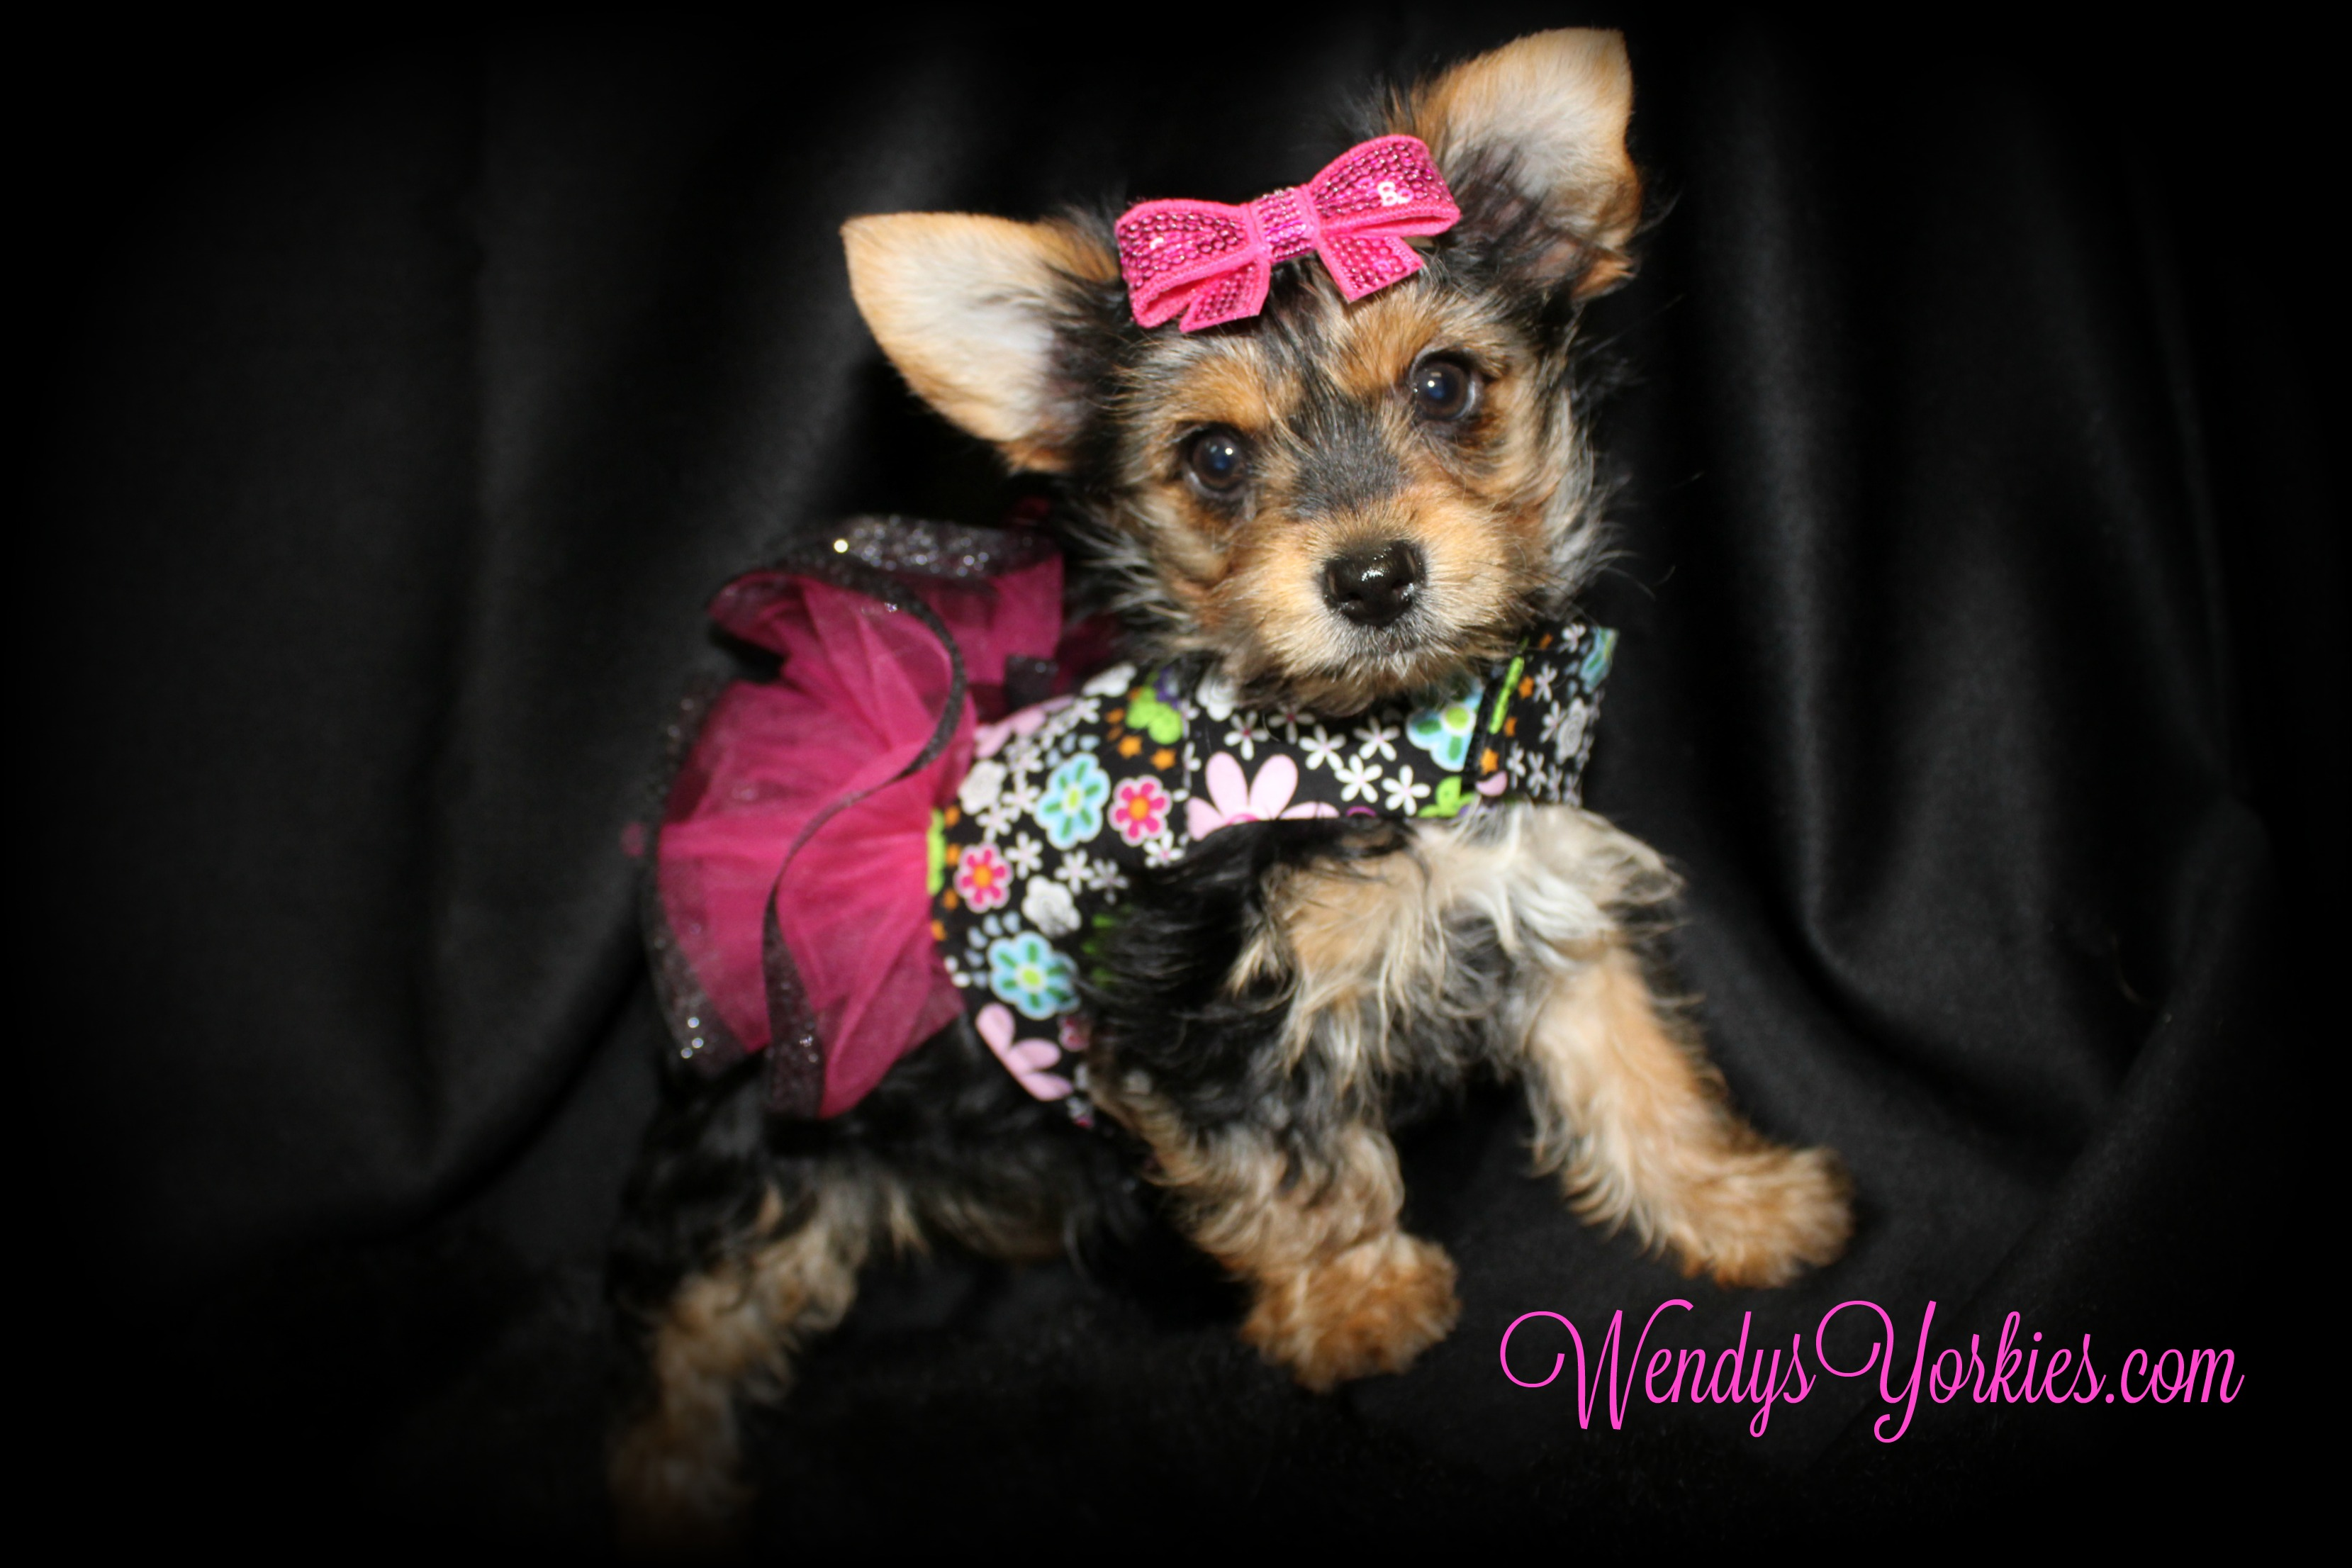 WendysYorkies.com, Teacup Yorkie puppy for sale, TH f1